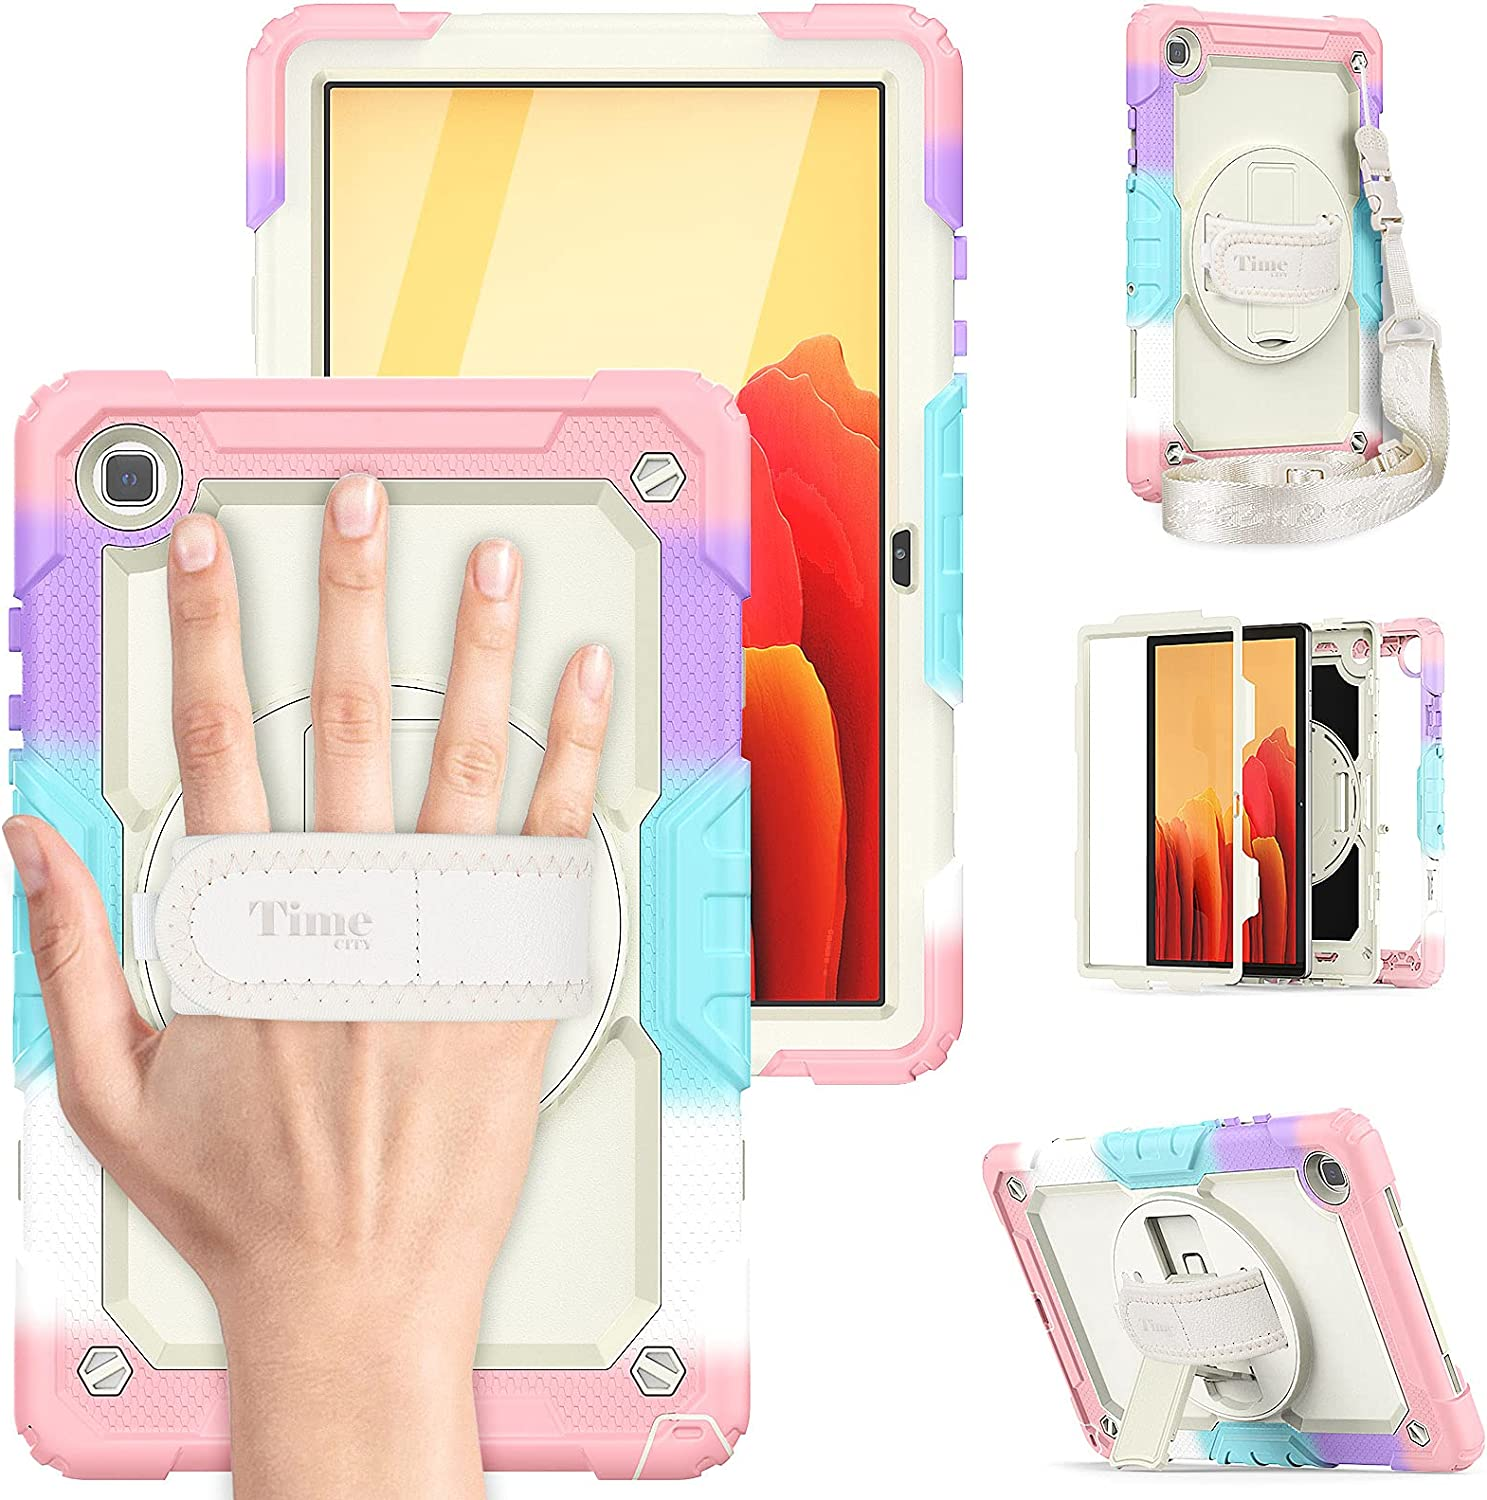 Timecity Case for Samsung Galaxy Tab 2020 Selling and selling Ranking TOP5 SM-T500 A7 10.4 inch